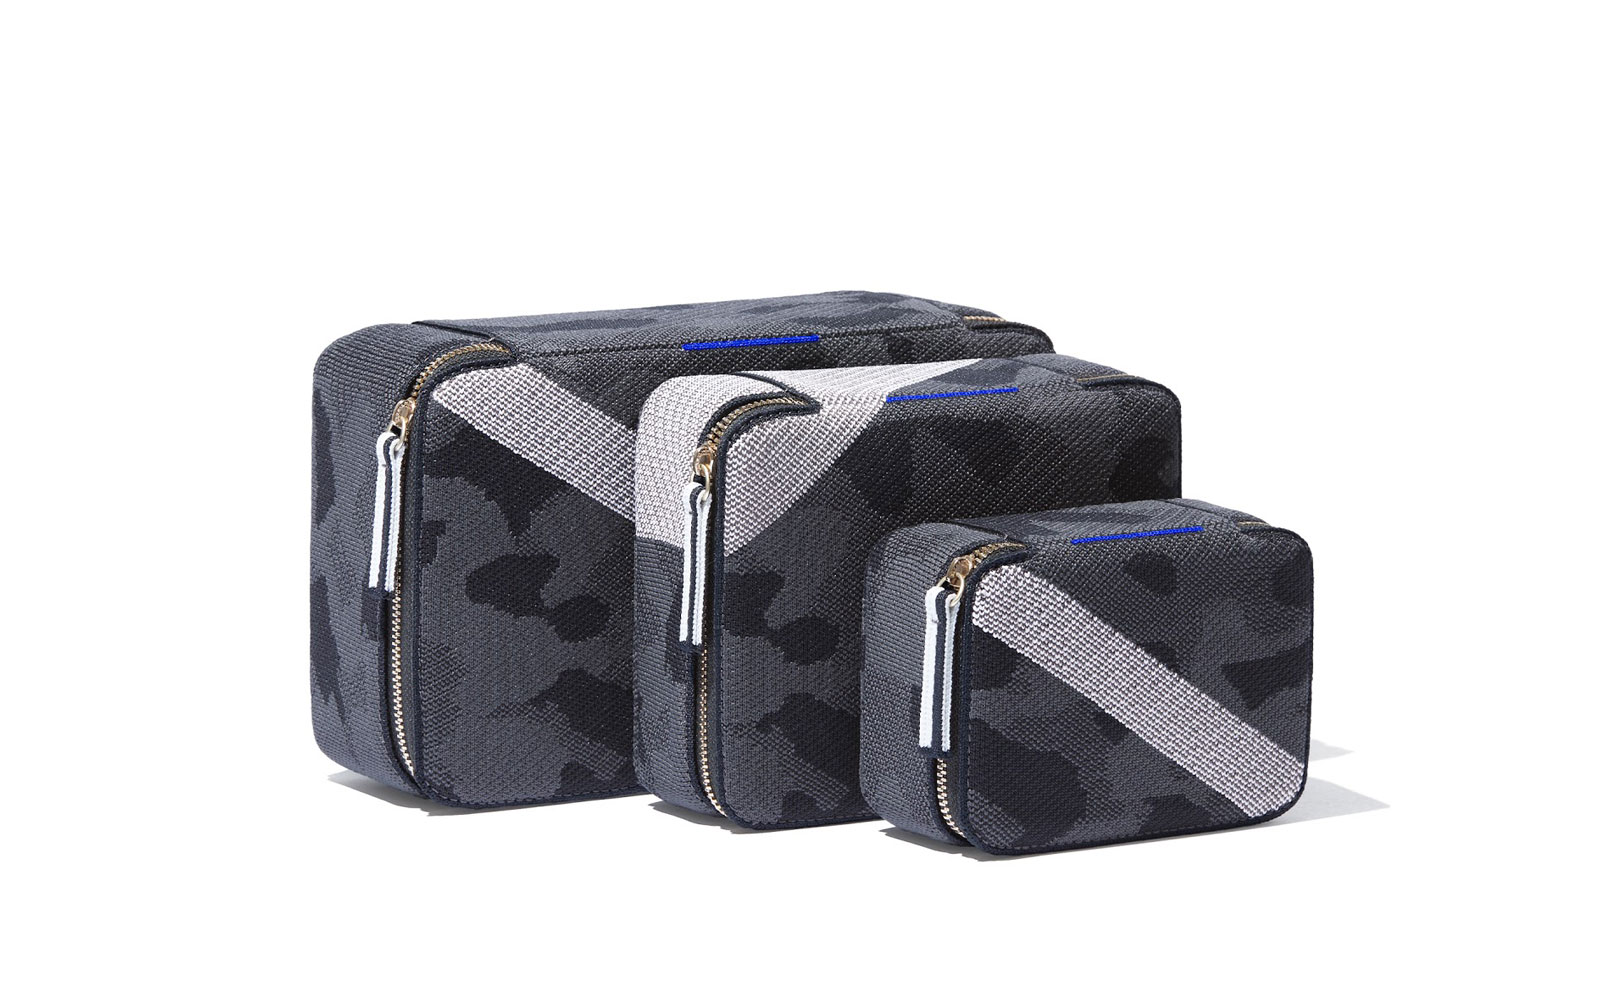 Three grey and black zippered cases